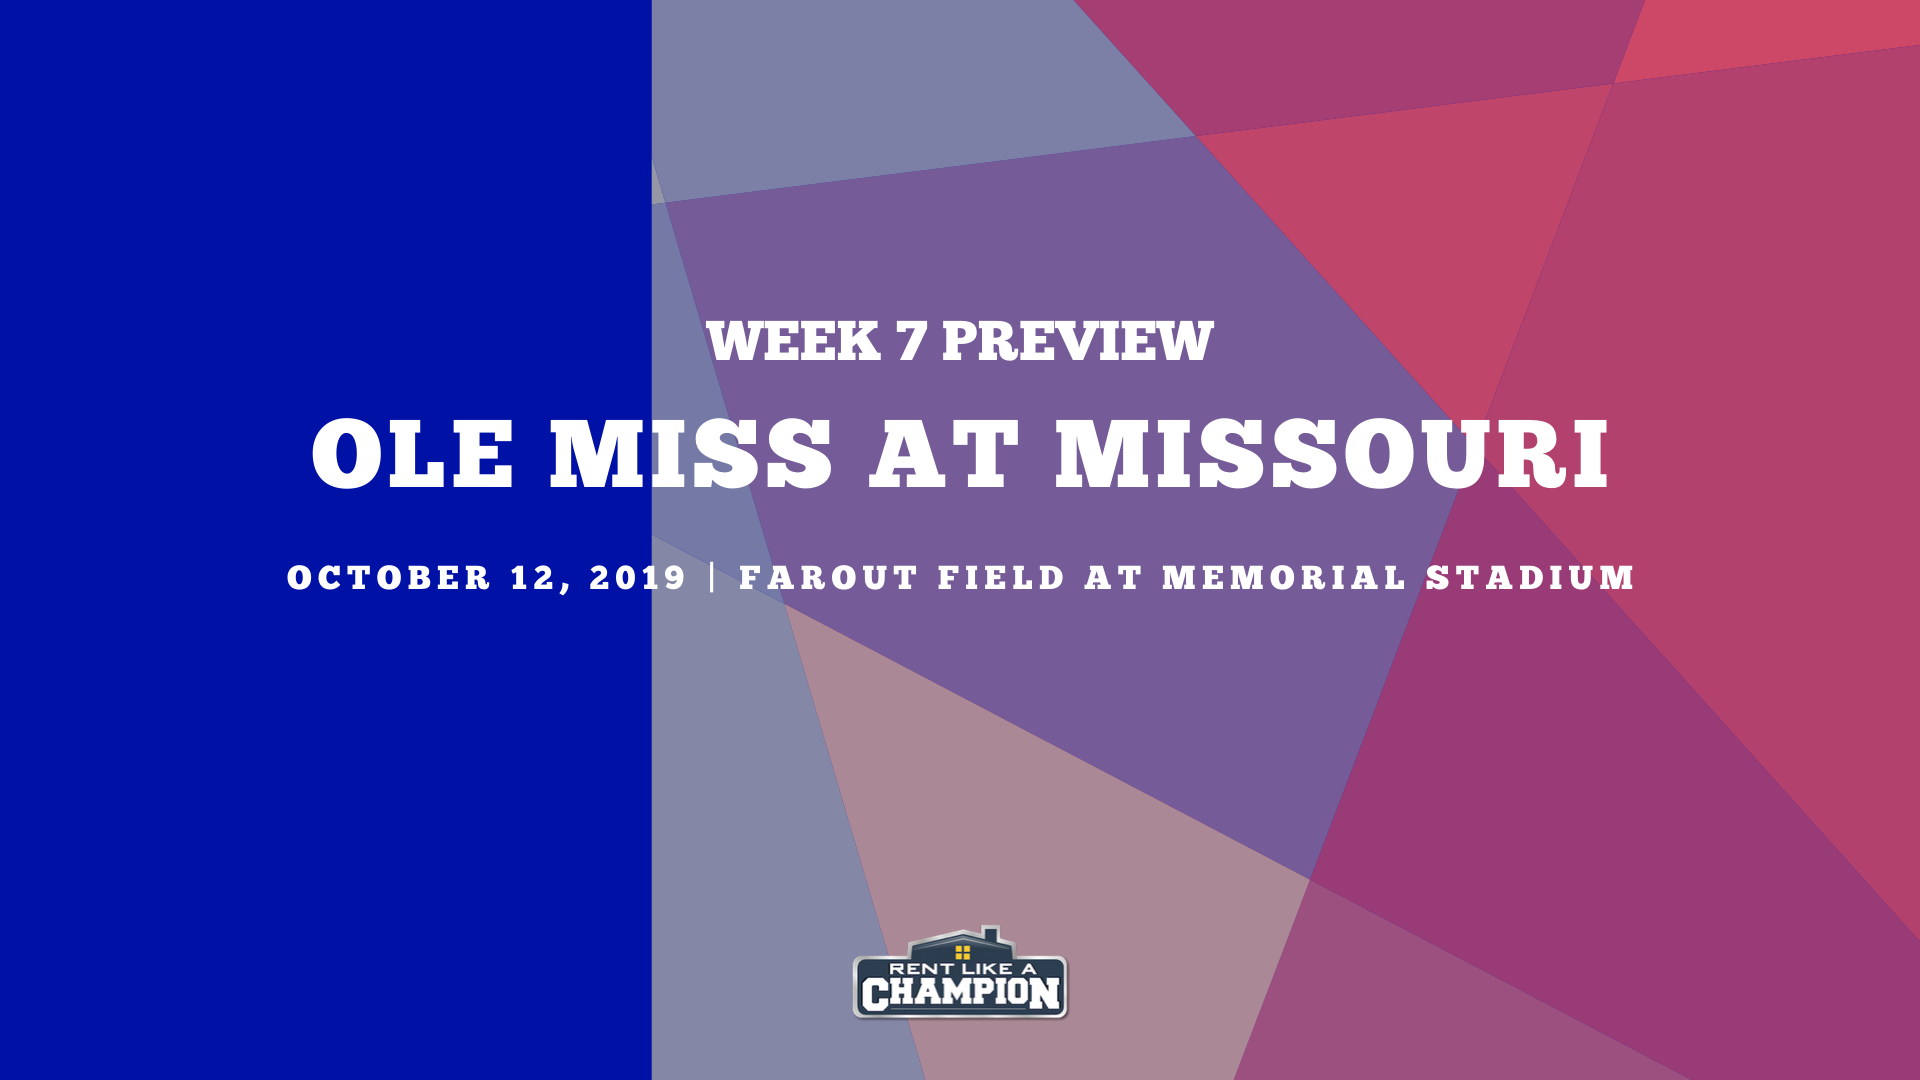 Ole Miss Game Preview Template (8)